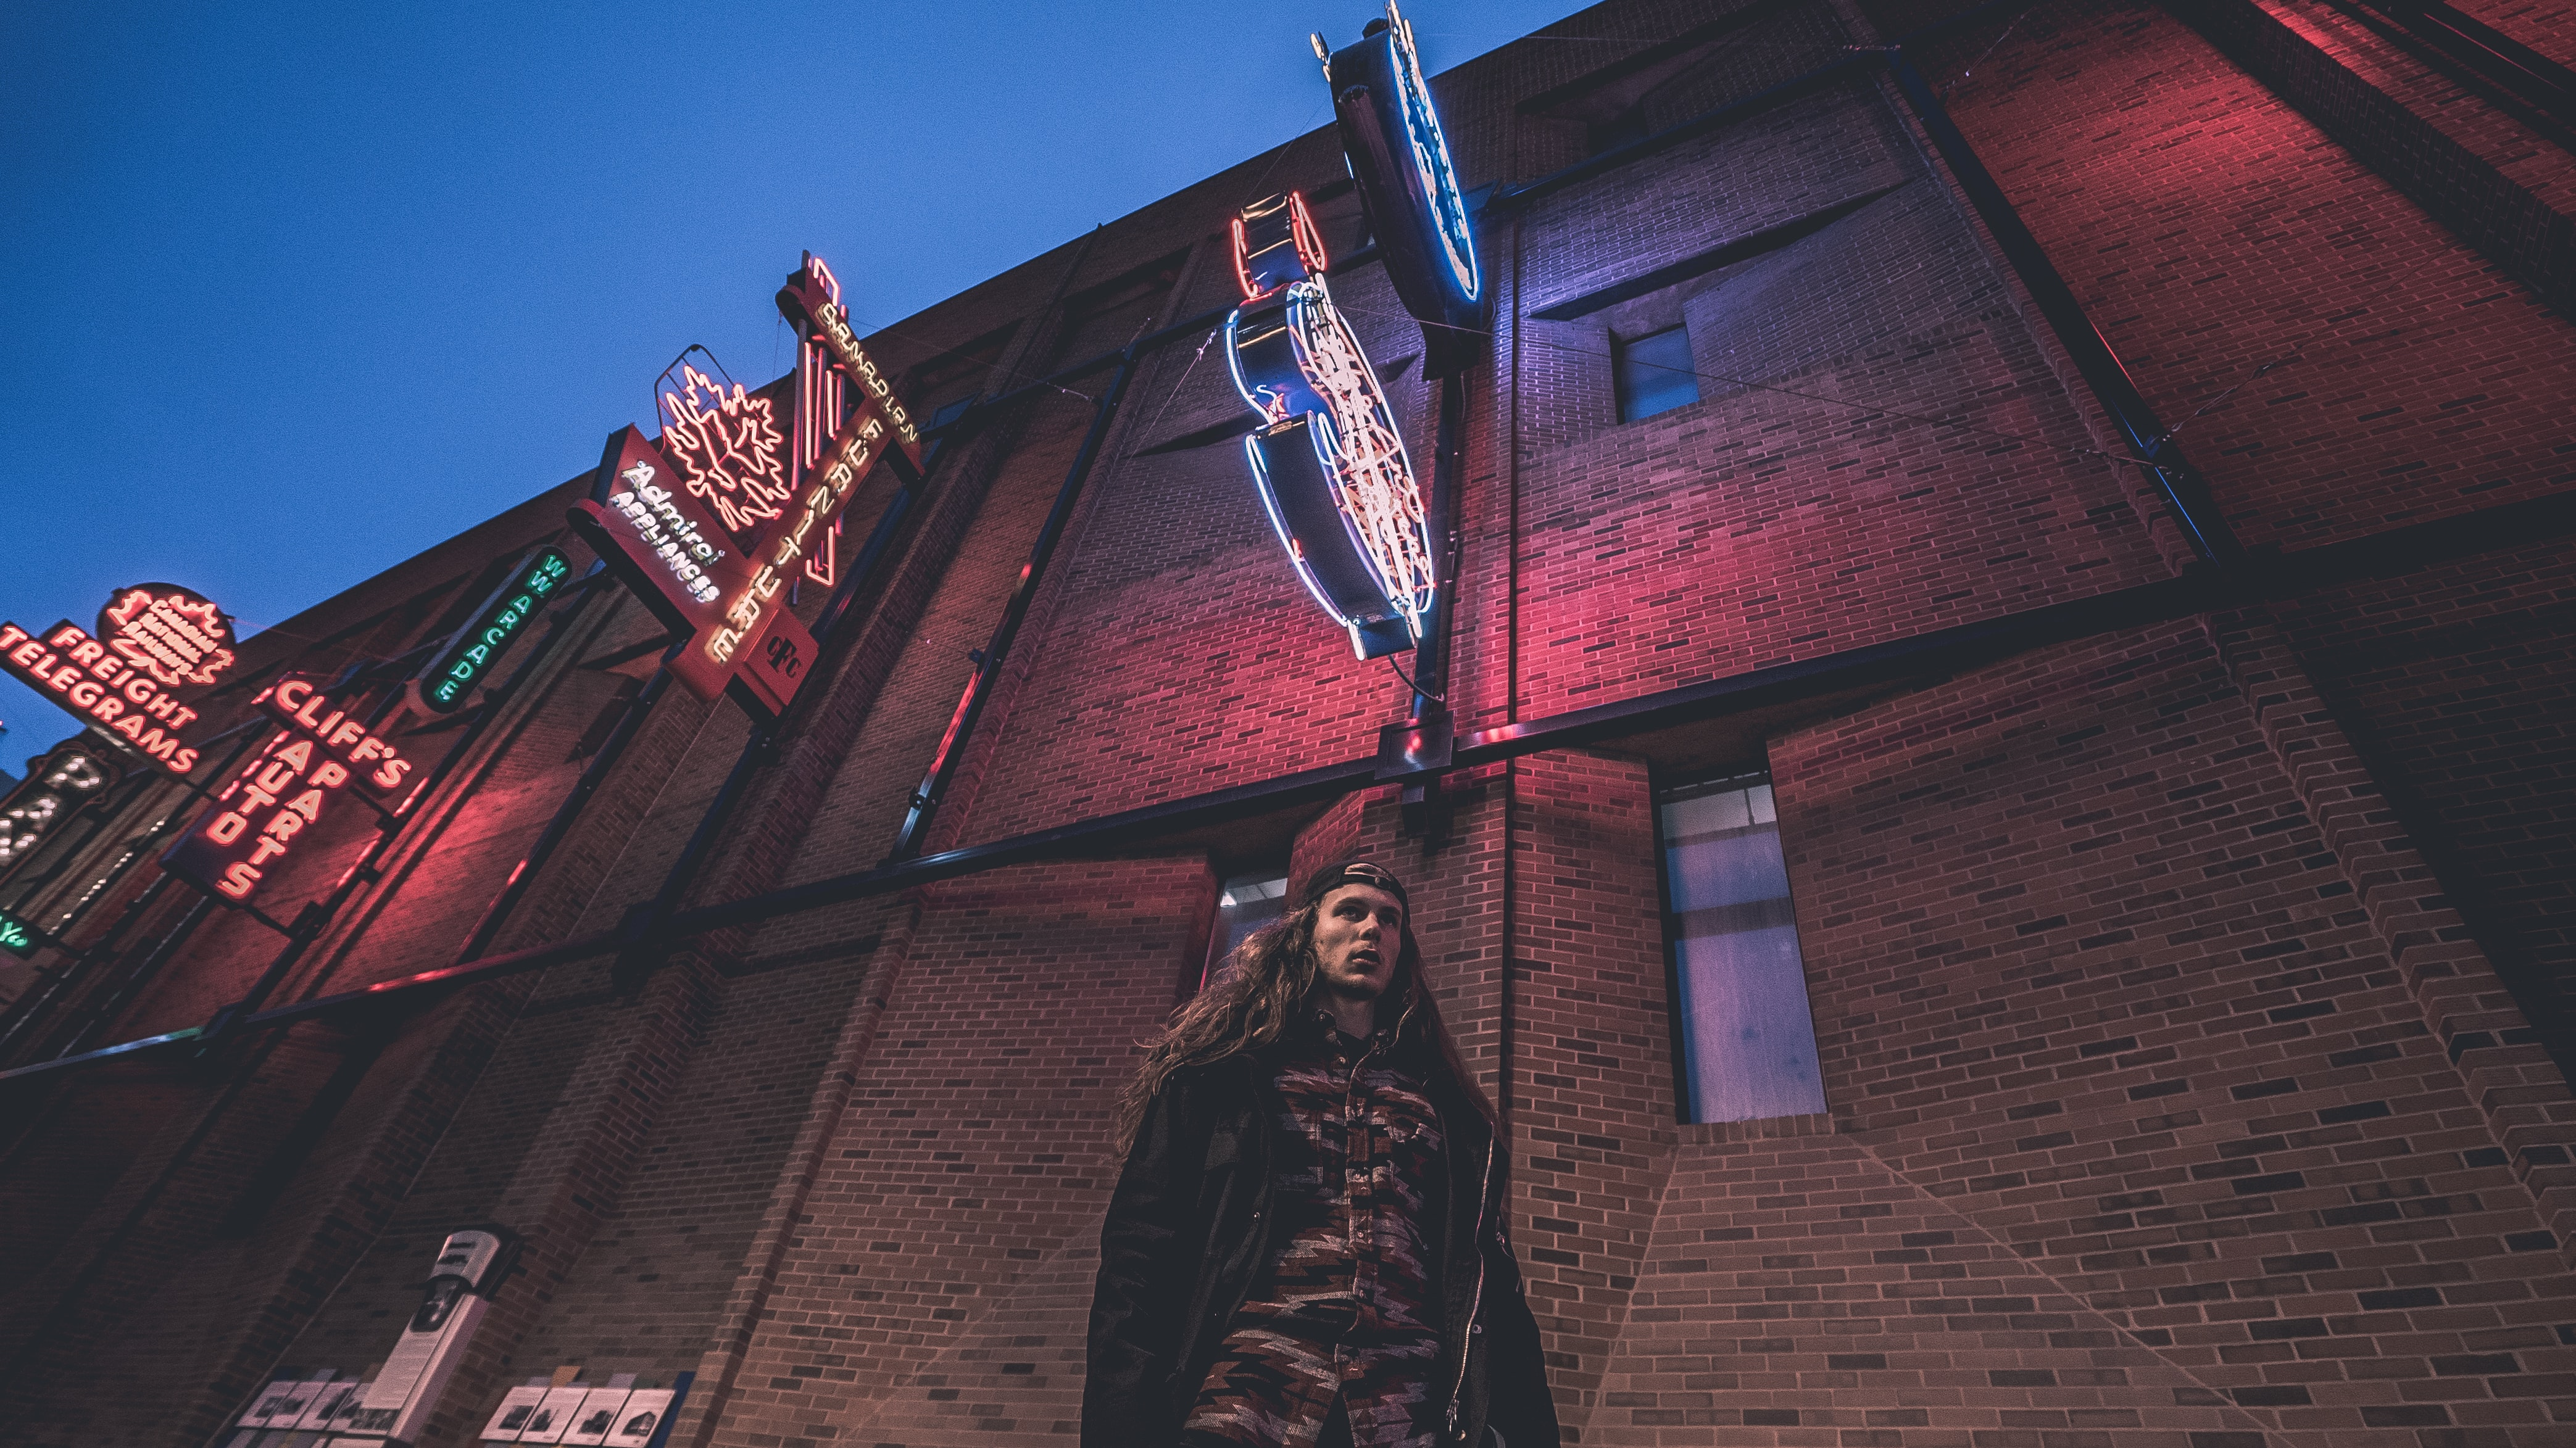 A man with long hair stands beneath neon signs at dusk in Edmonton